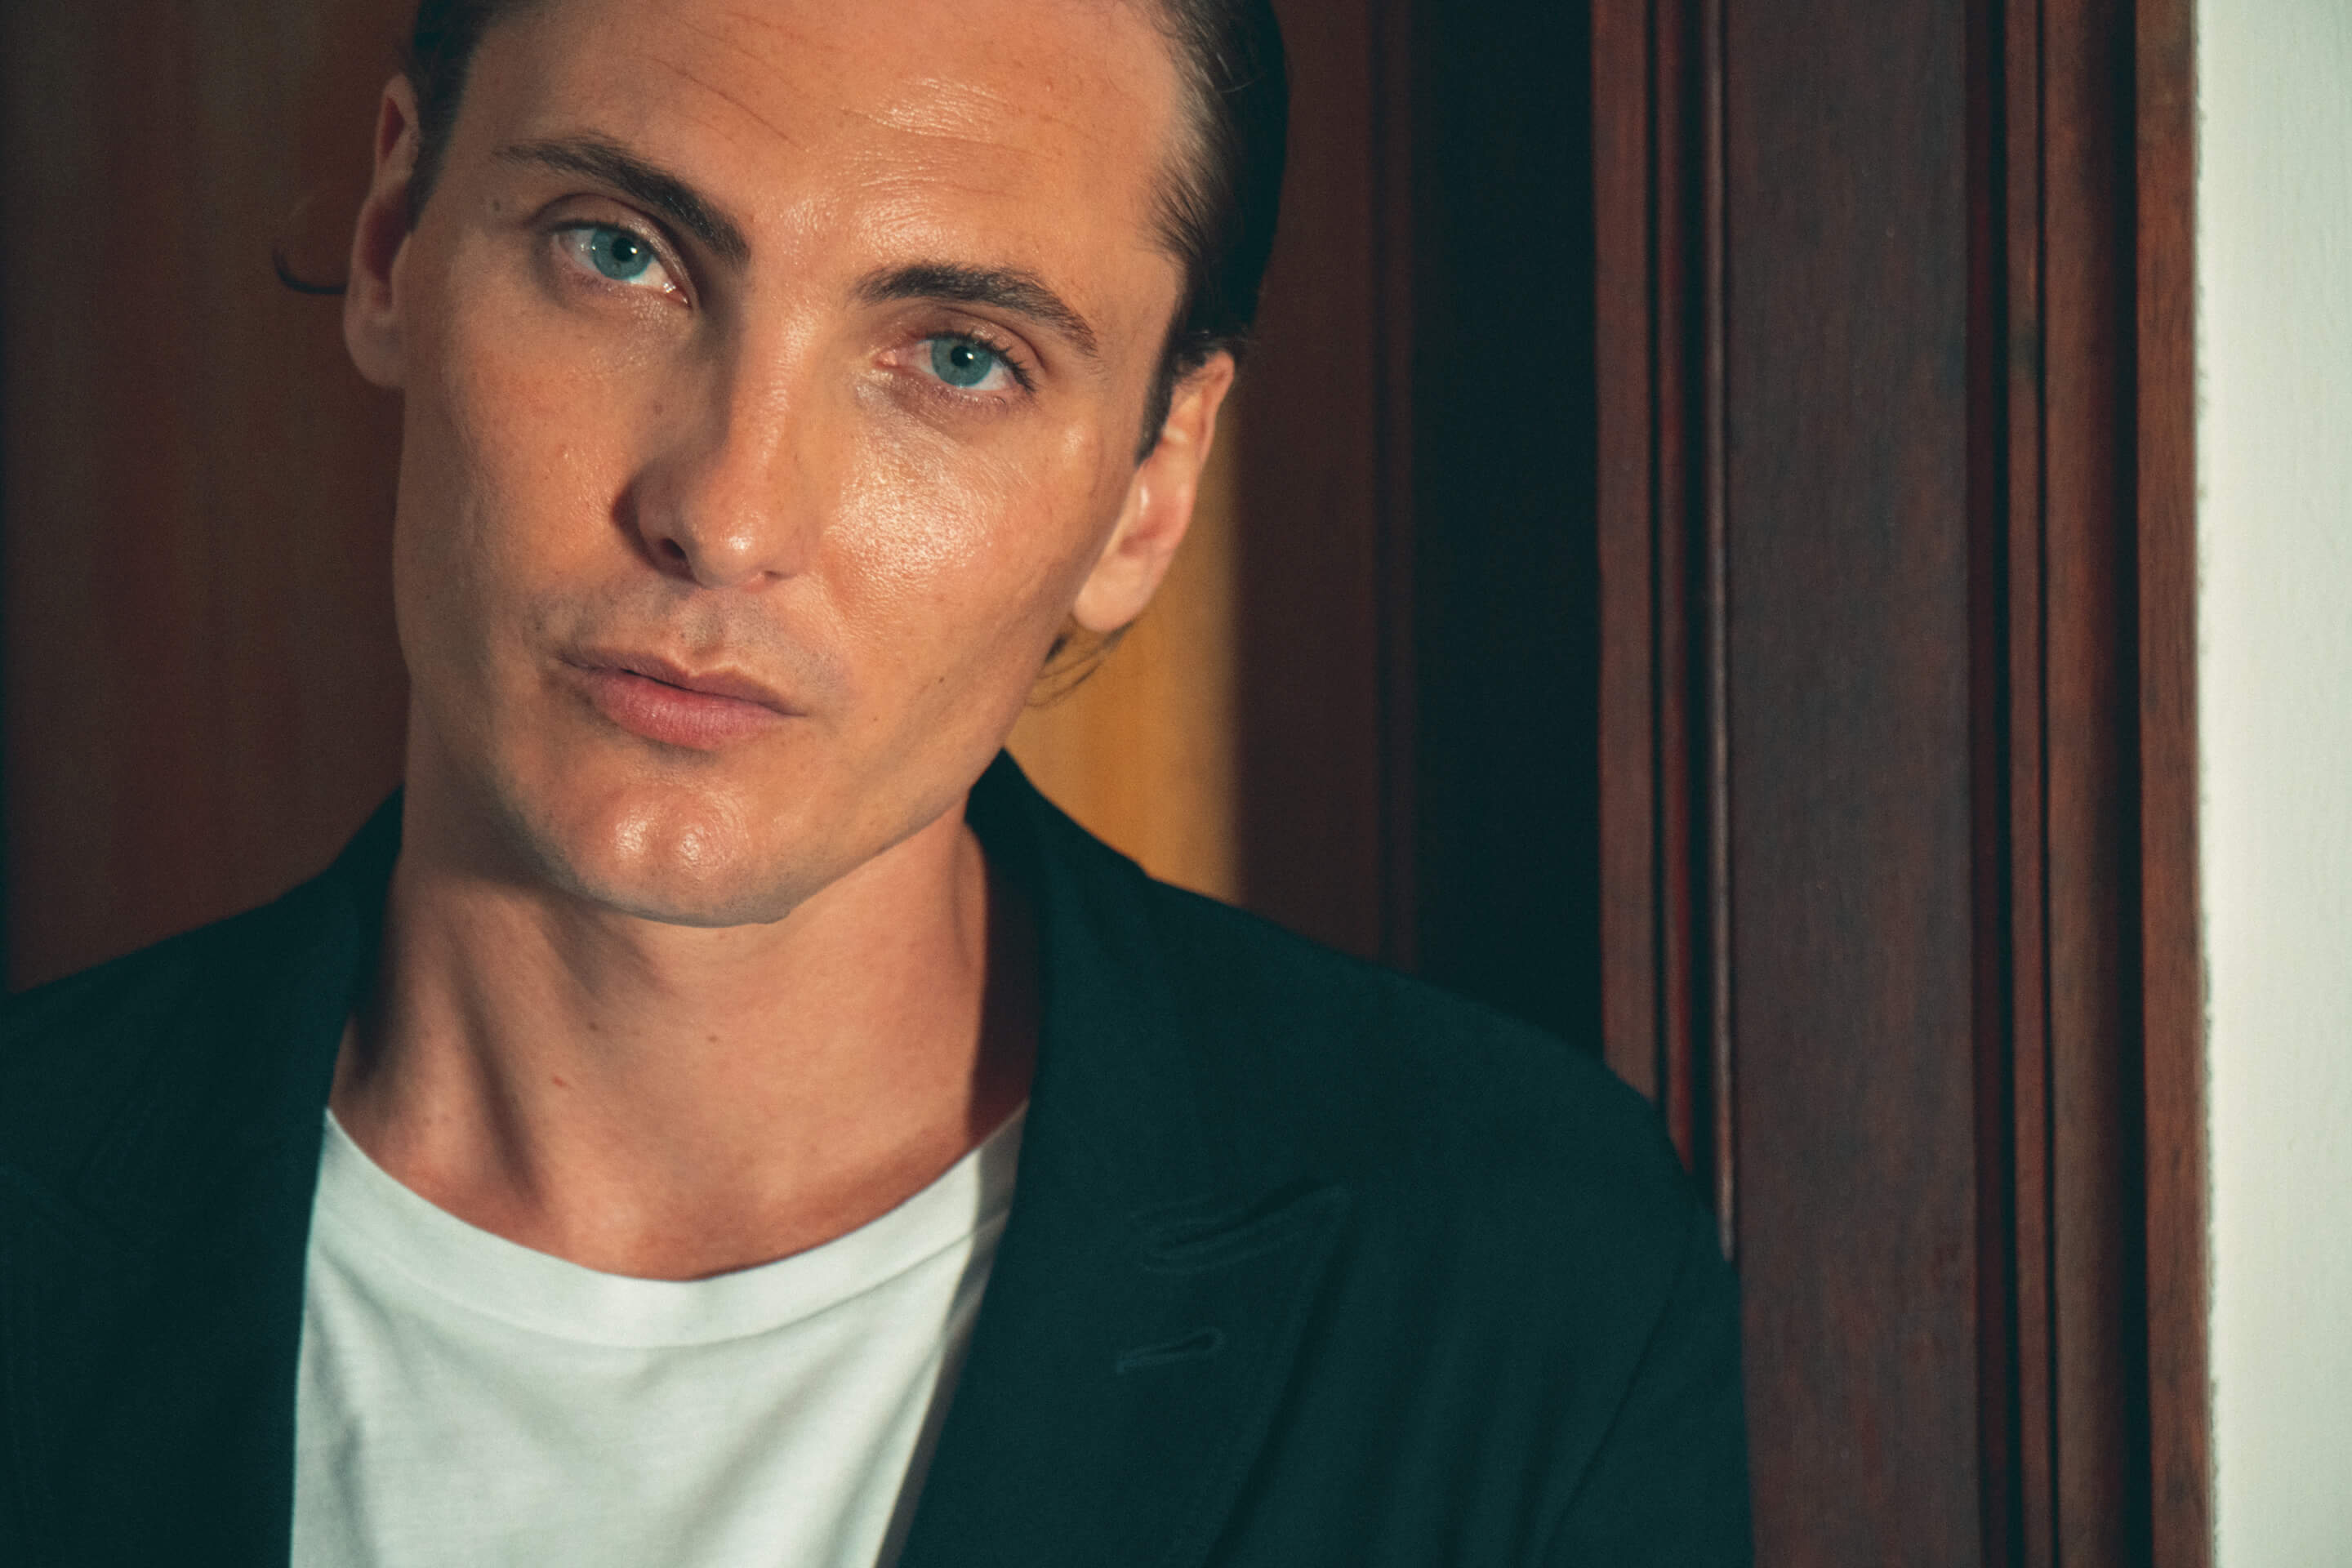 The Italian Reve Interview With Eamon Farren Everything Is Built From Truth Voices From The Screen Shirley henderson (mrs rose marbury). interview with eamon farren